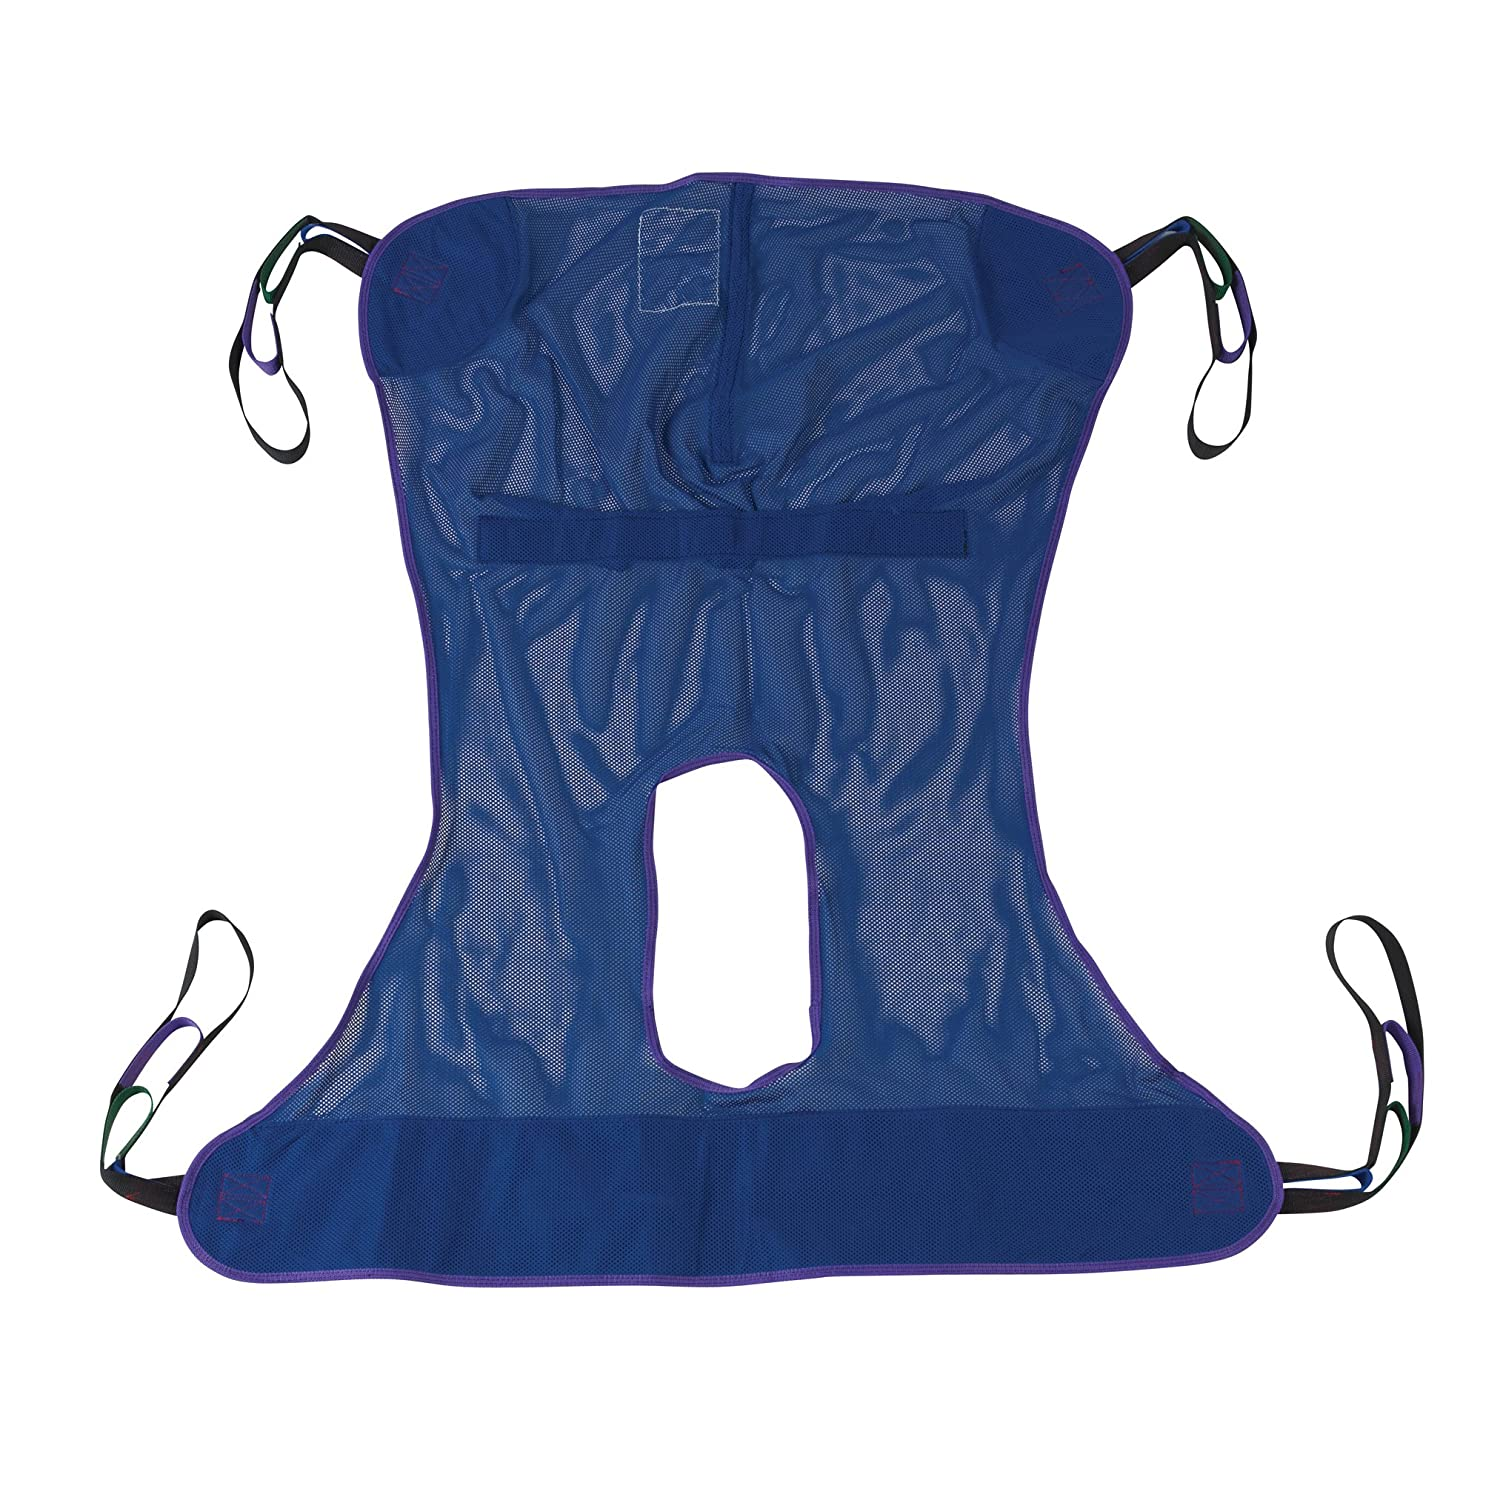 Drive Medical Full Body Patient Lift Sling with Commode Cutout Option, Blue, Medium